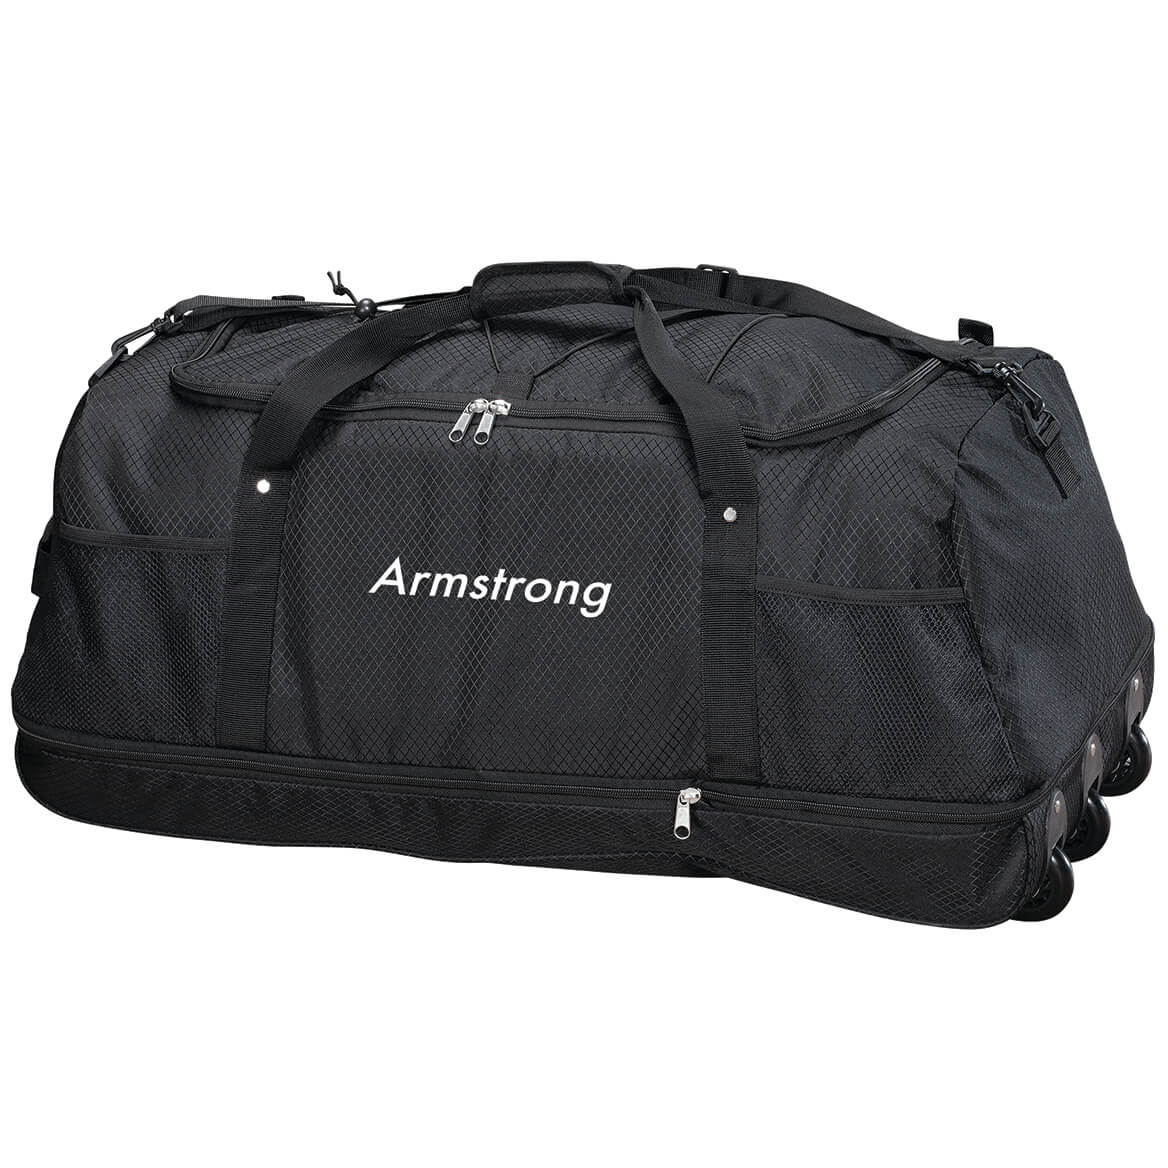 Personalized 31 Inch Rolling Duffle Bag-370883